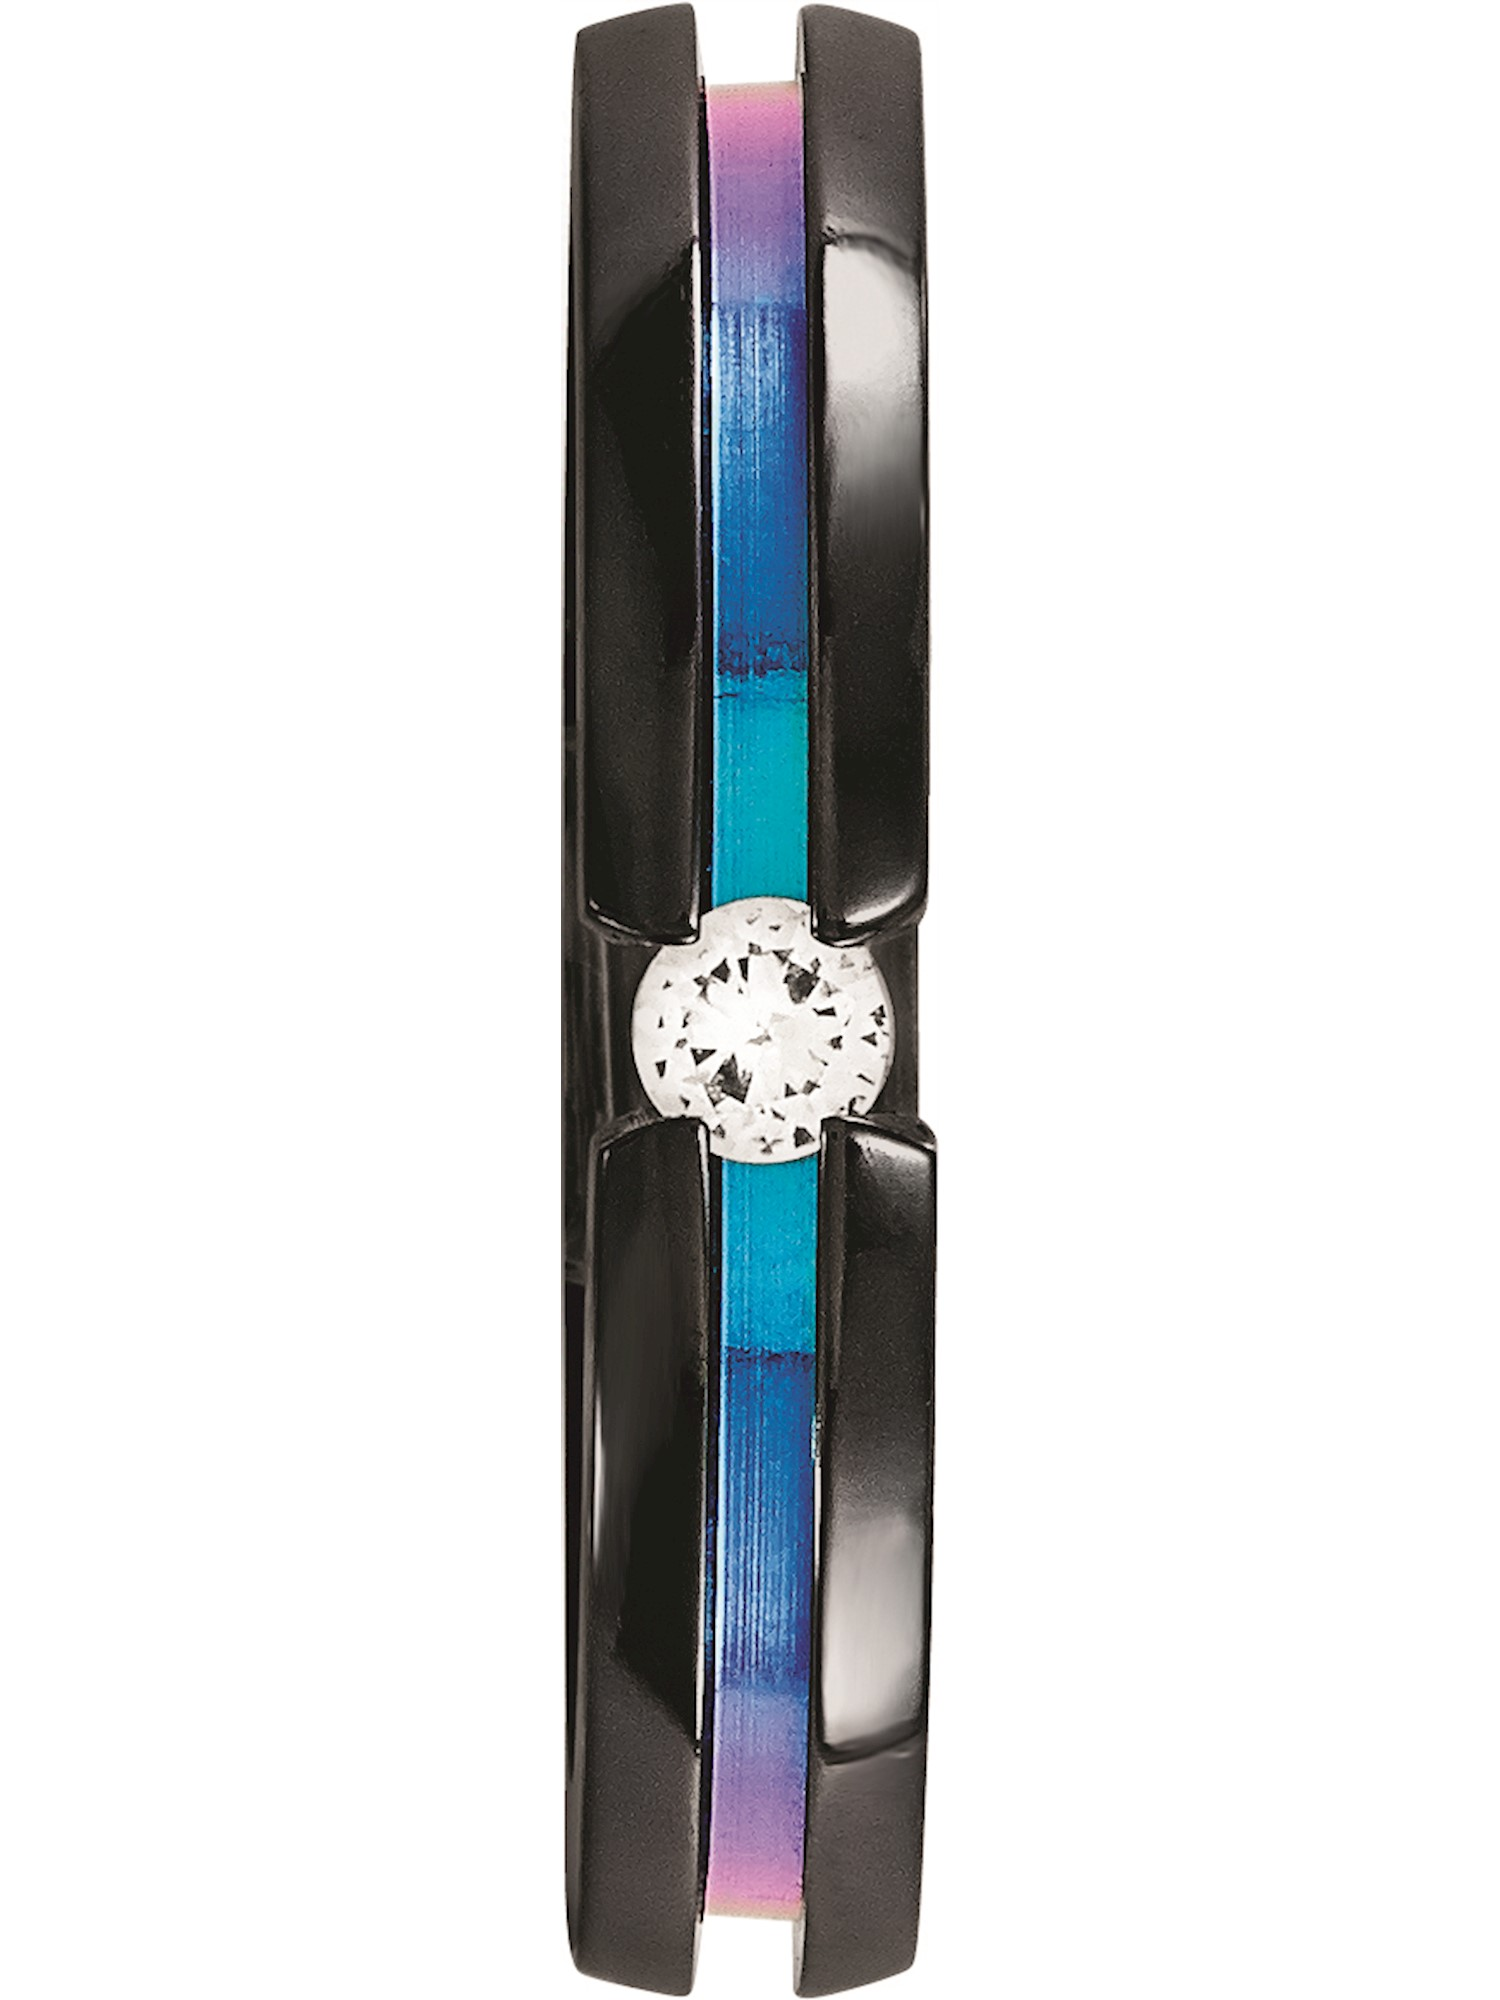 Edward Mirell Black Titanium White Sapphire and Rainbow Multi-Colored Grooved Anodized 4mm Band